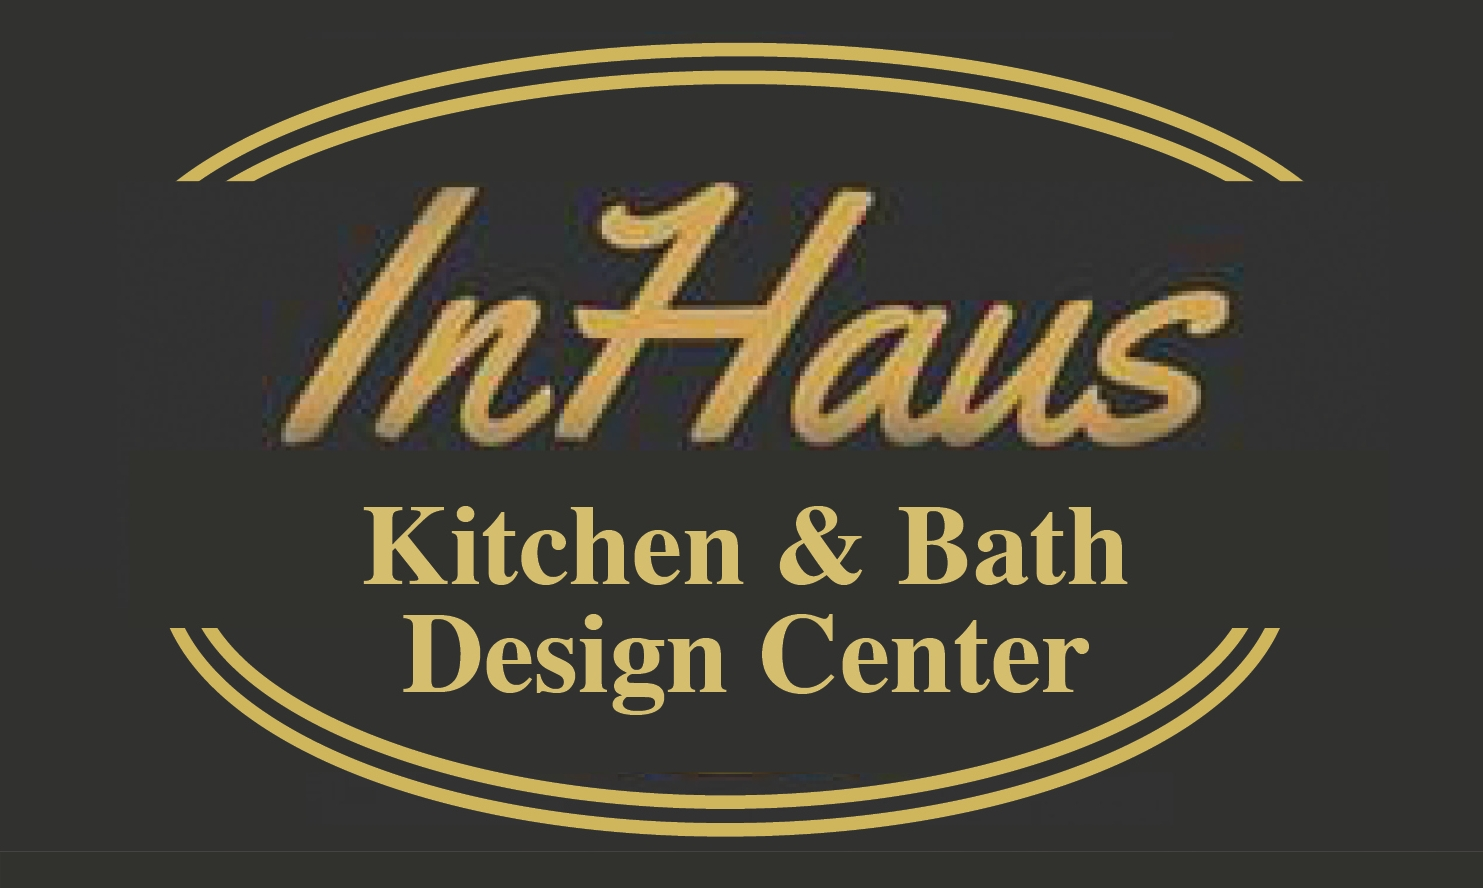 InHaus Kitchen & Bath